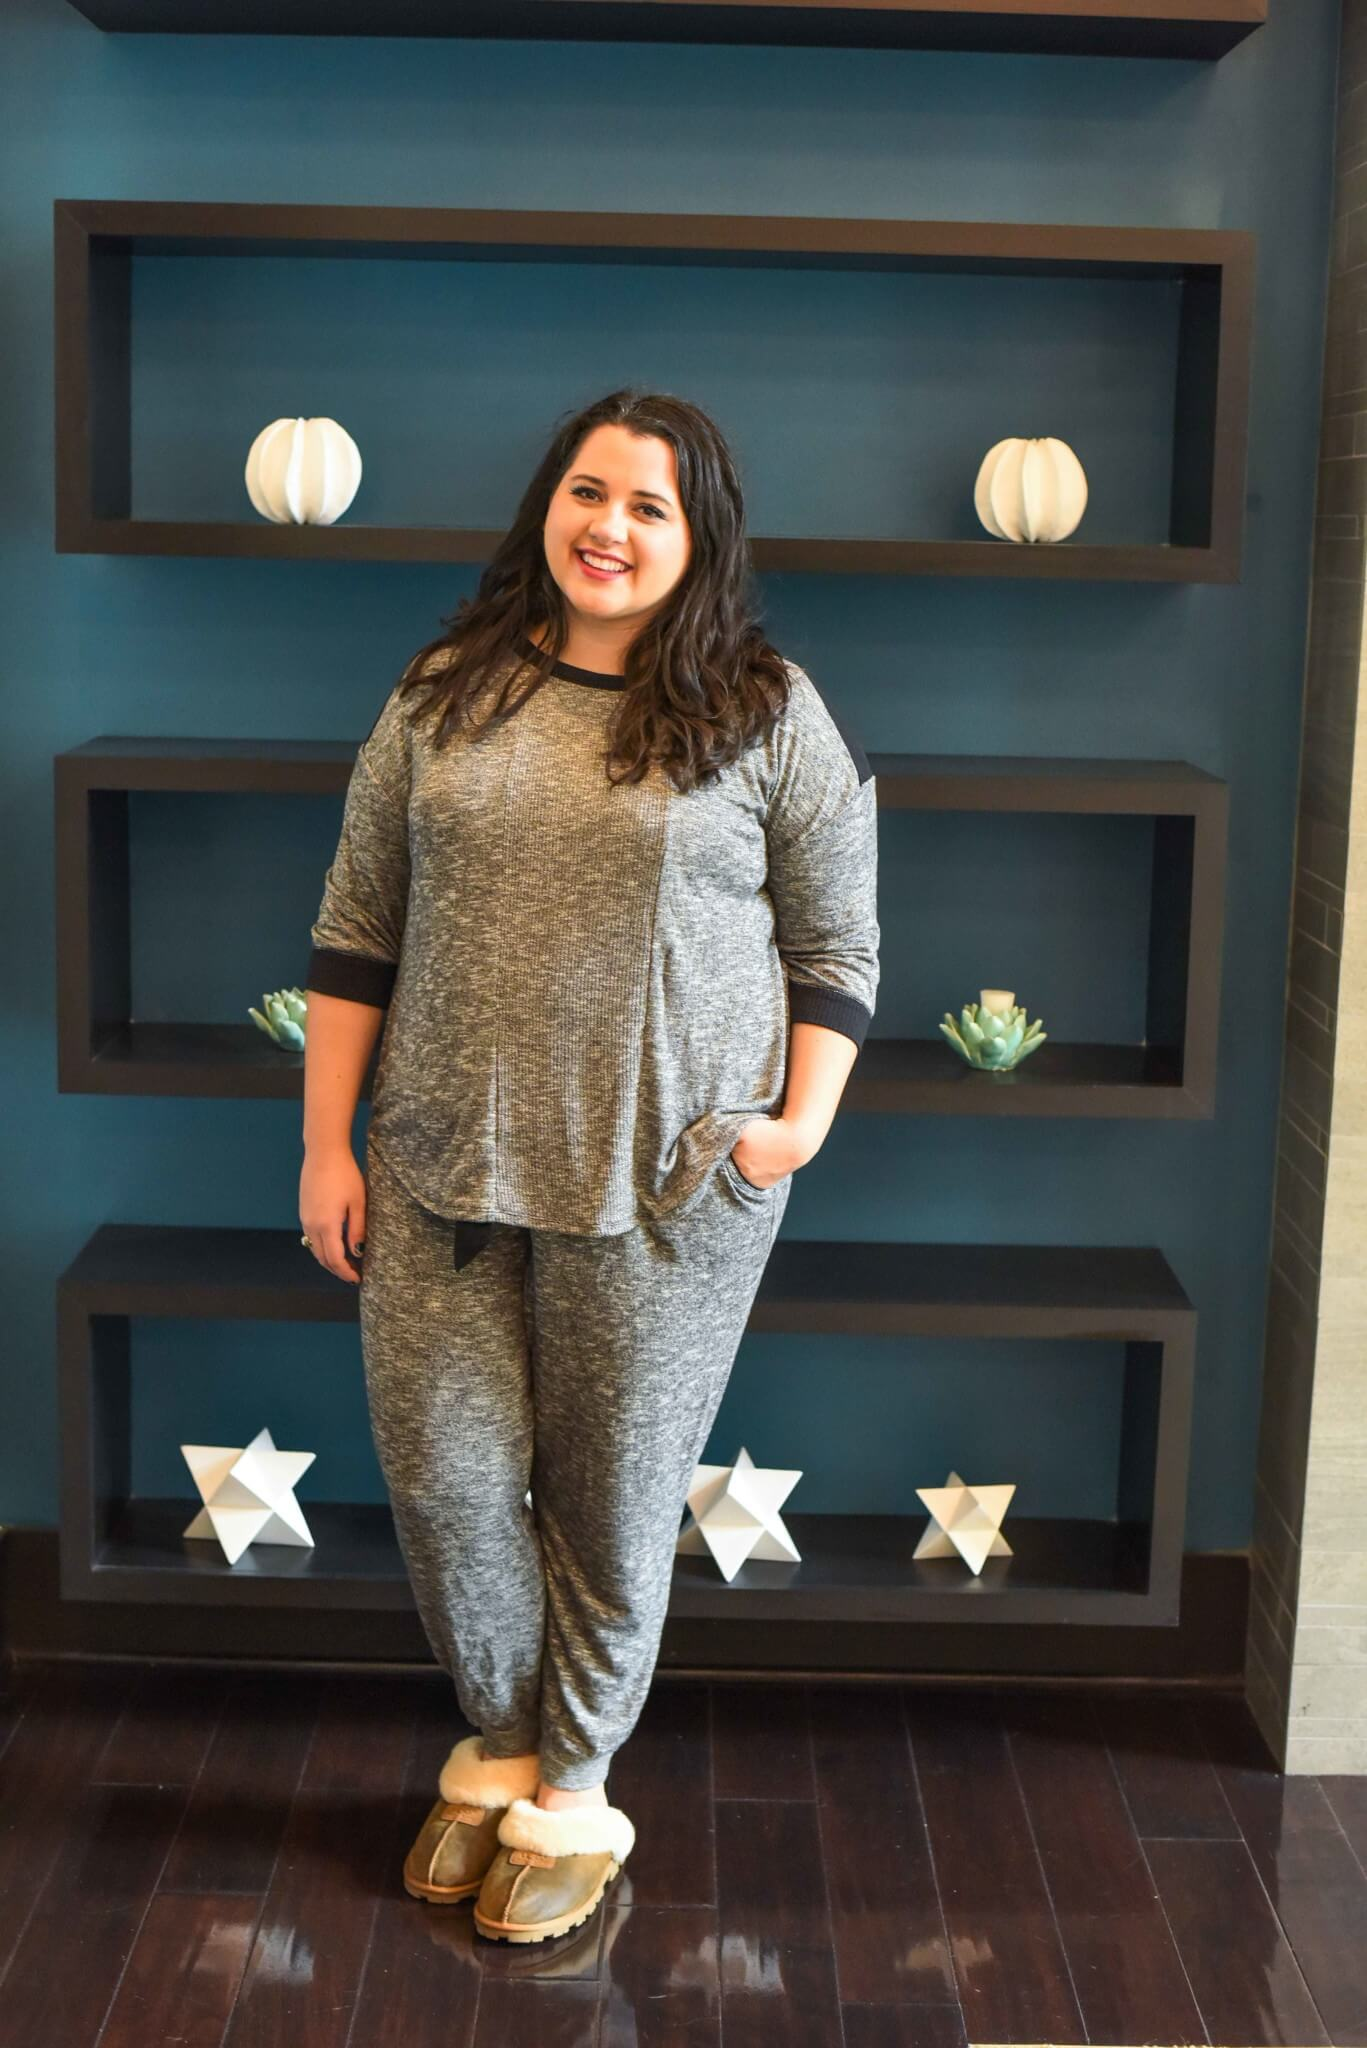 The Simply Vera Vera Wang pajamas from Kohl's have quickly become one of my go-to lounge and sleepwear sets. Not only is it comfortable, but it also won't break the bank. #plussizestyle #sleepwear